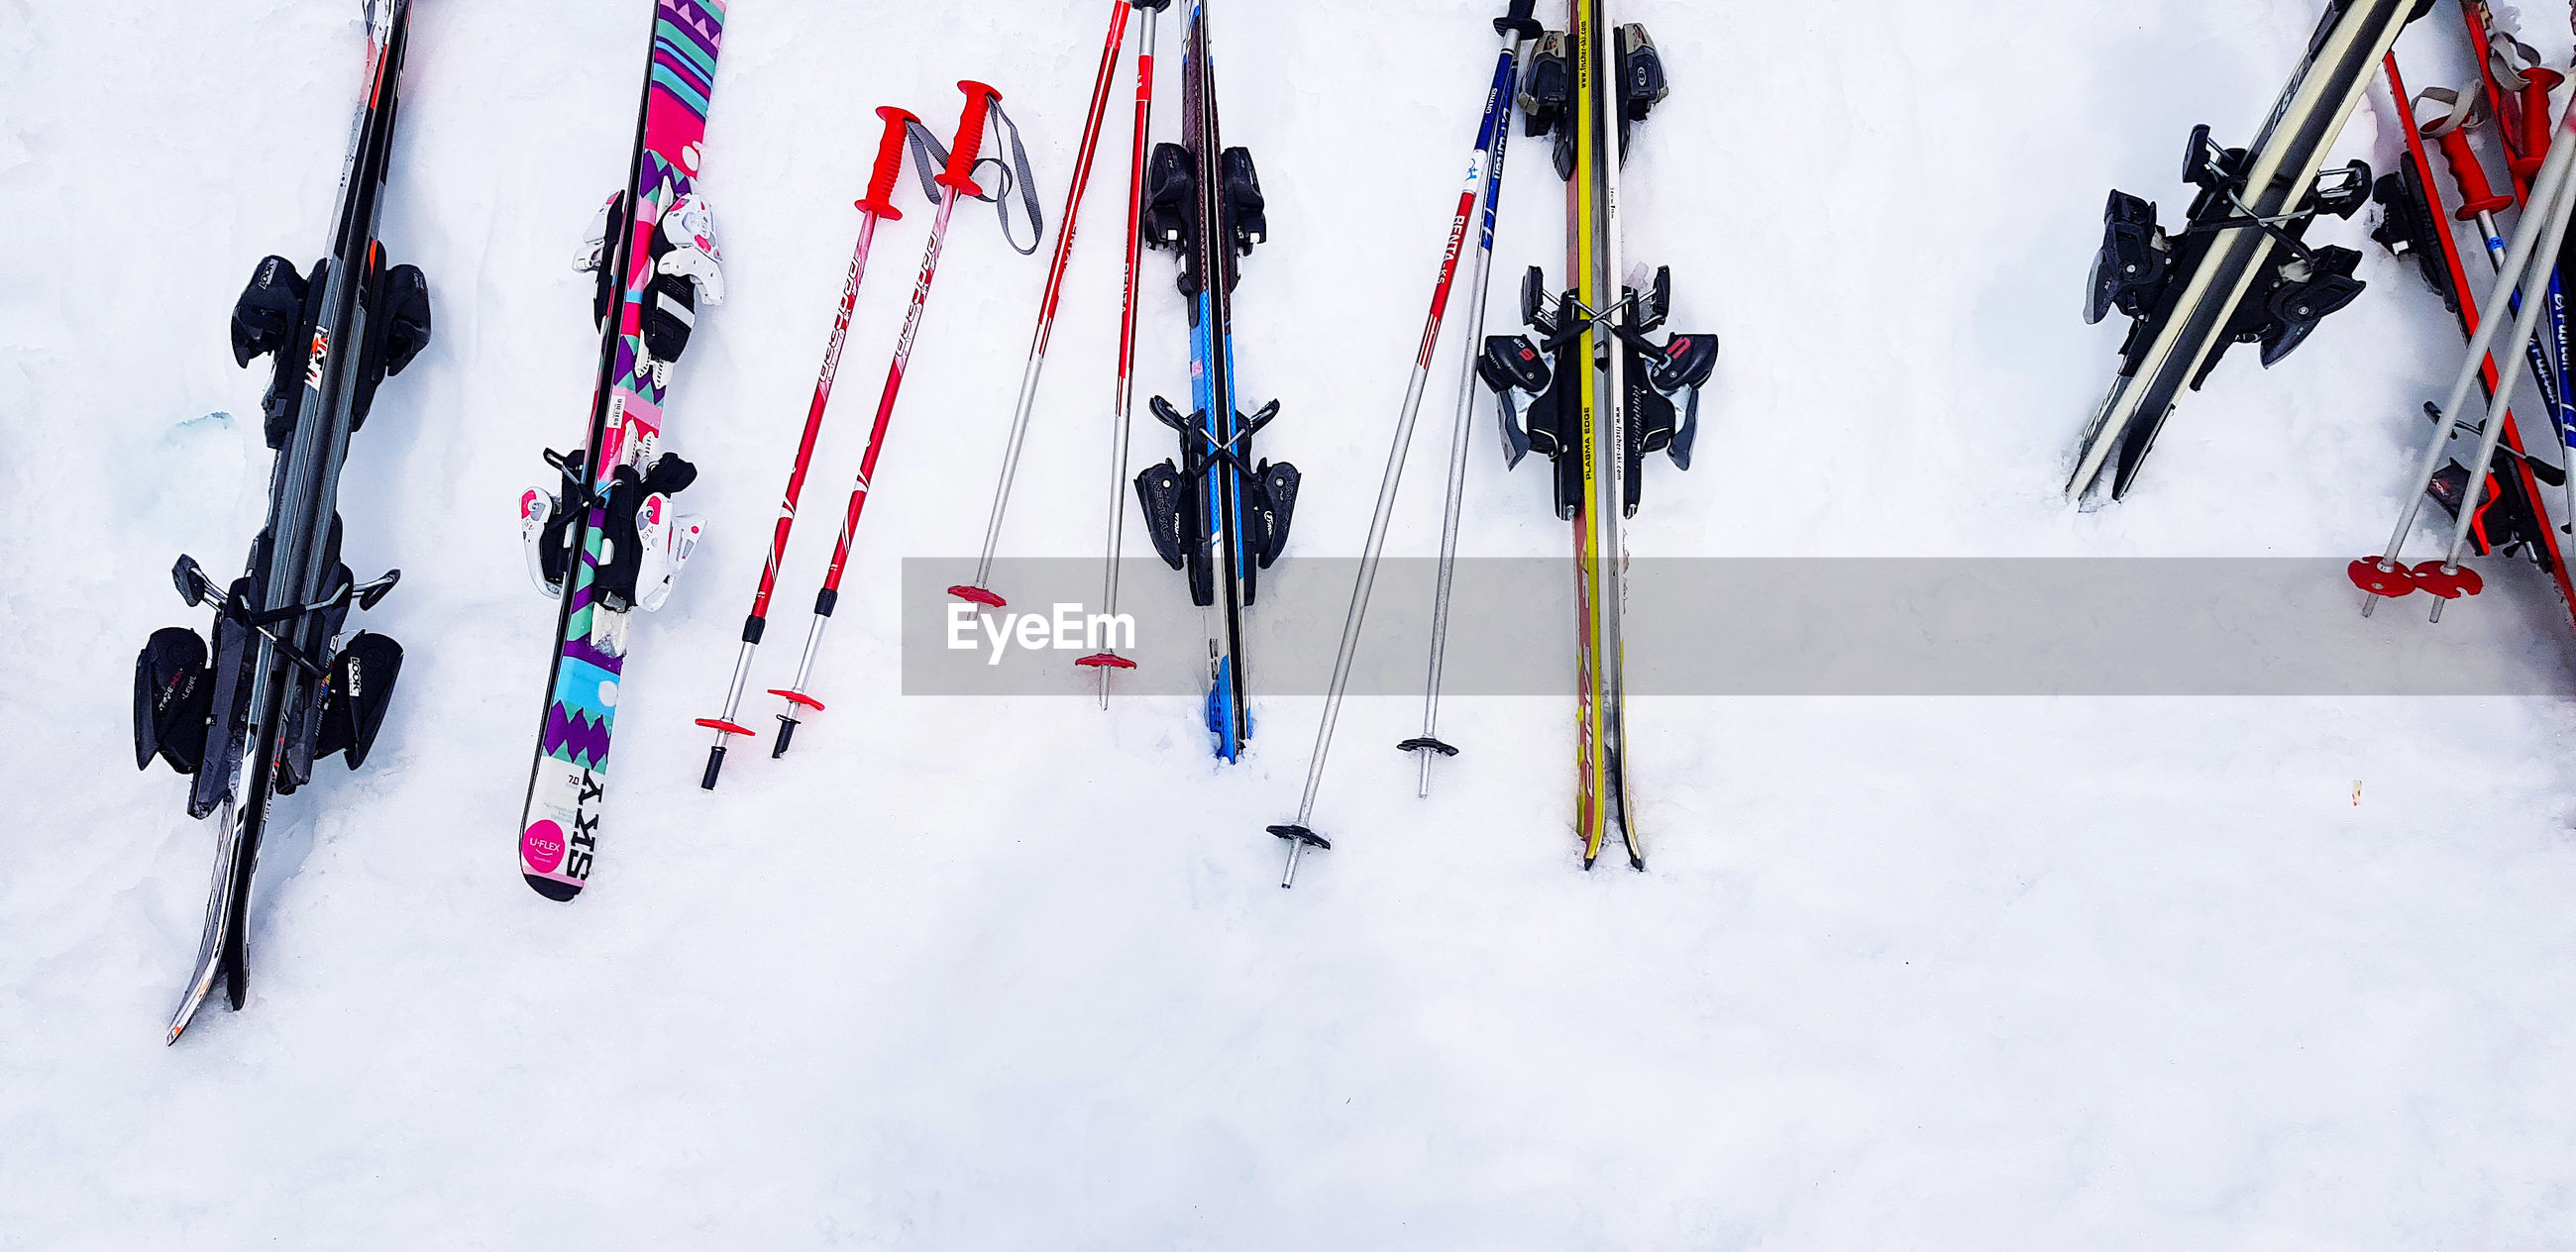 HIGH ANGLE VIEW OF PEOPLE SKIING ON SNOW COVERED LAND